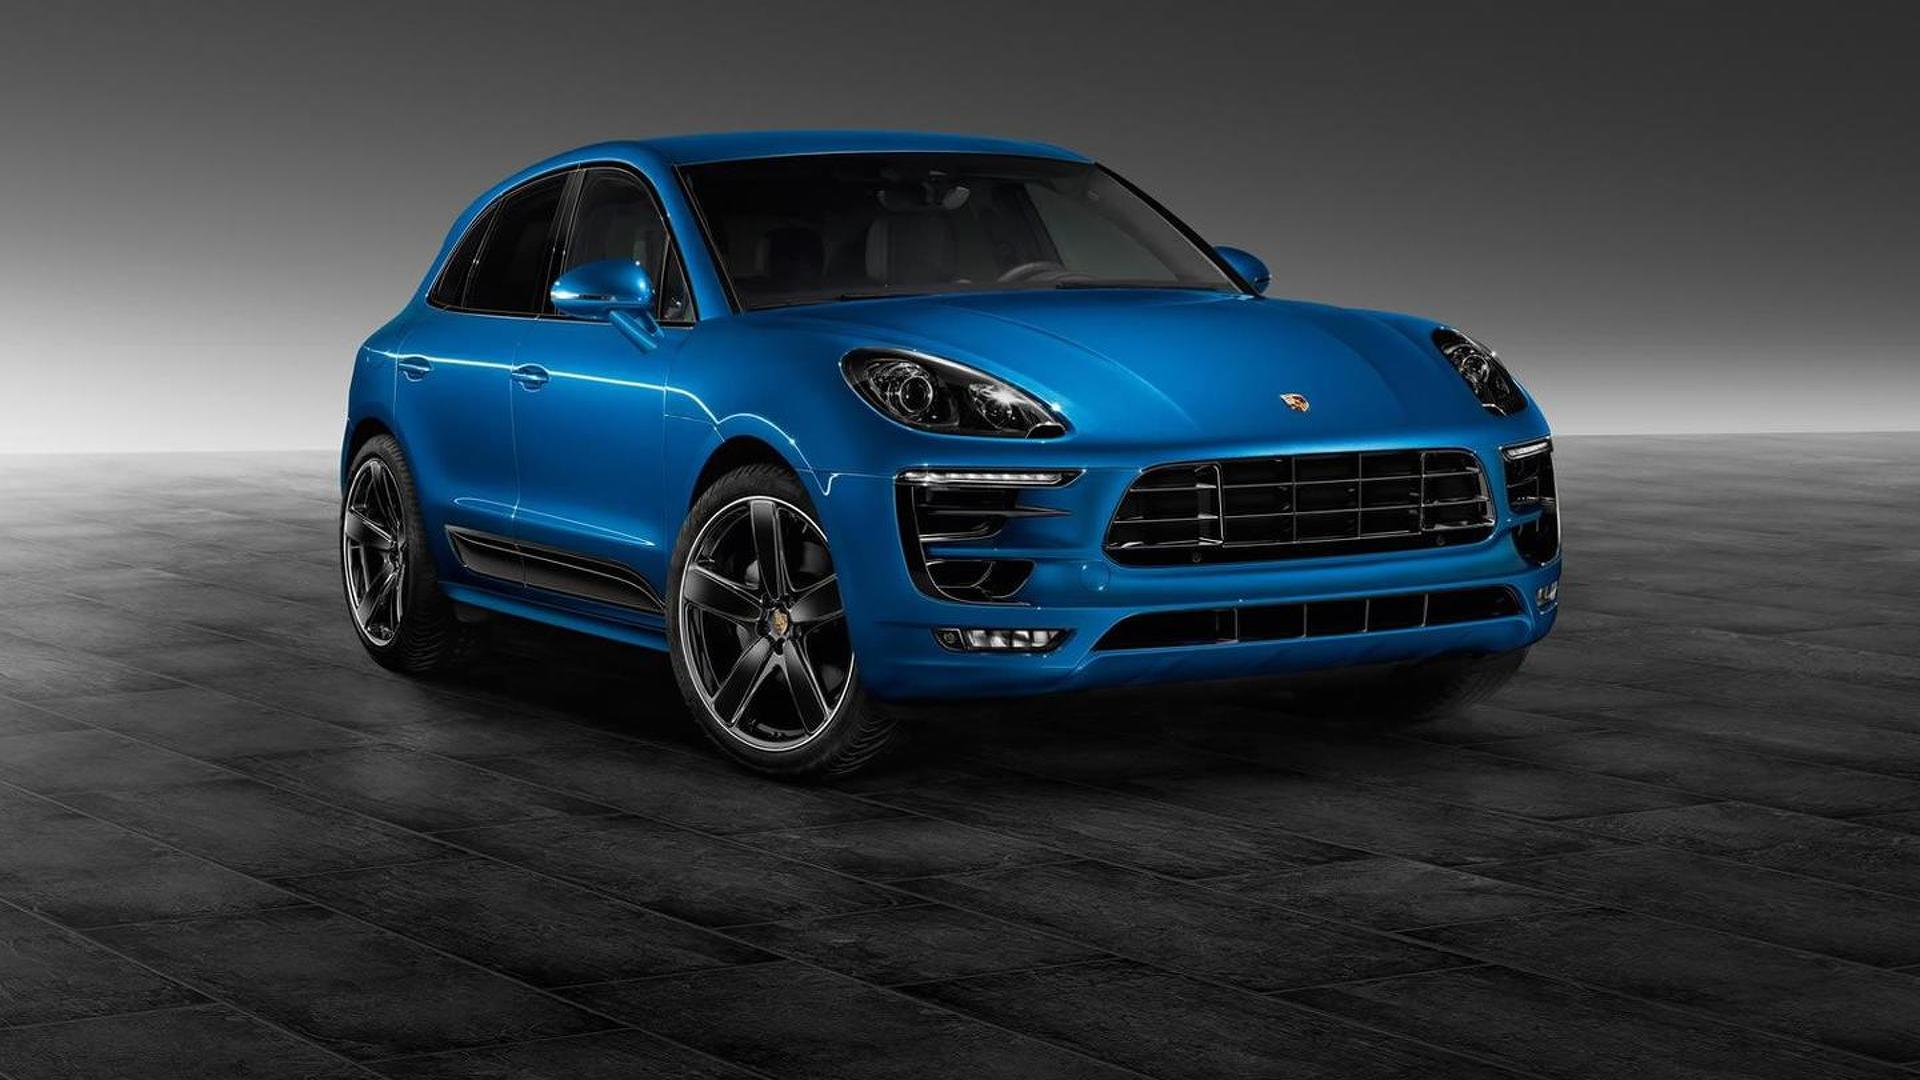 Porsche Exclusive shows off special Macan S